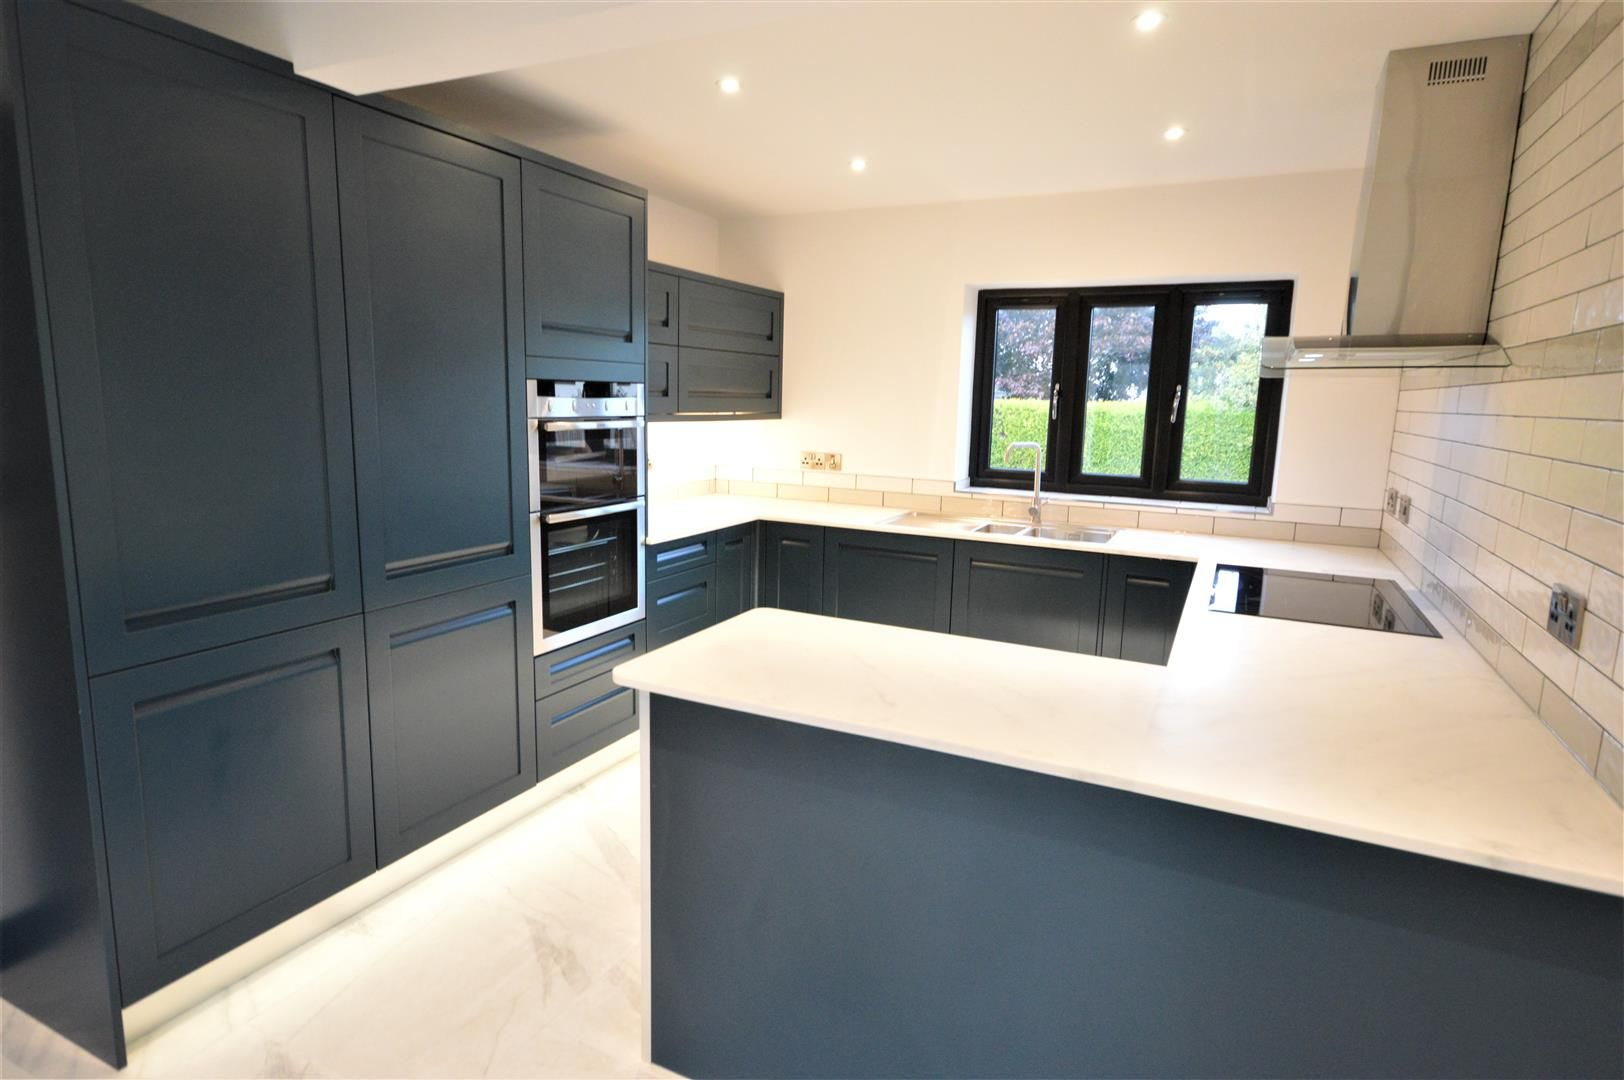 4 bed detached for sale in Brimfield 3